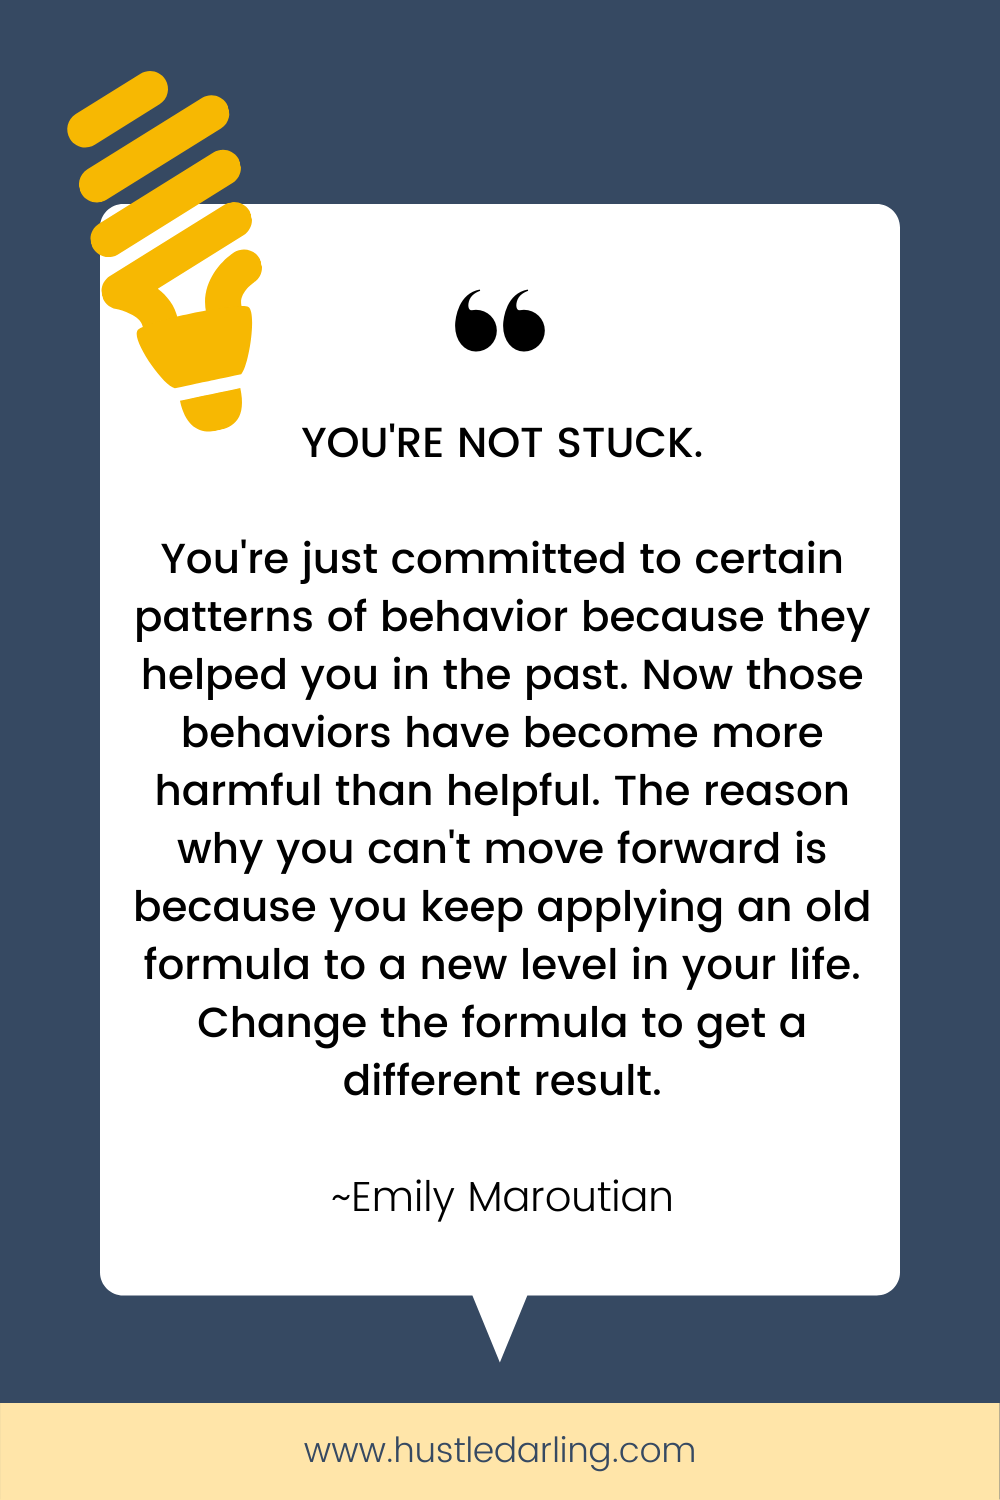 """A bright yellow lightbulb clipart is in the top corner of the image. On a dark blue background is a white speech bubble with a large quotation mark at the top. Text underneath reads """"YOU'RE NOT STUCK. You're just committed to certain patterns of behavior because they helped you in the past. Now those behaviors have become more harmful than helpful. The reason why you can't move forward is because you keep applying an old formula to a new level in your life. Change the formula to get a different result. ~ Emily Maroutian"""""""